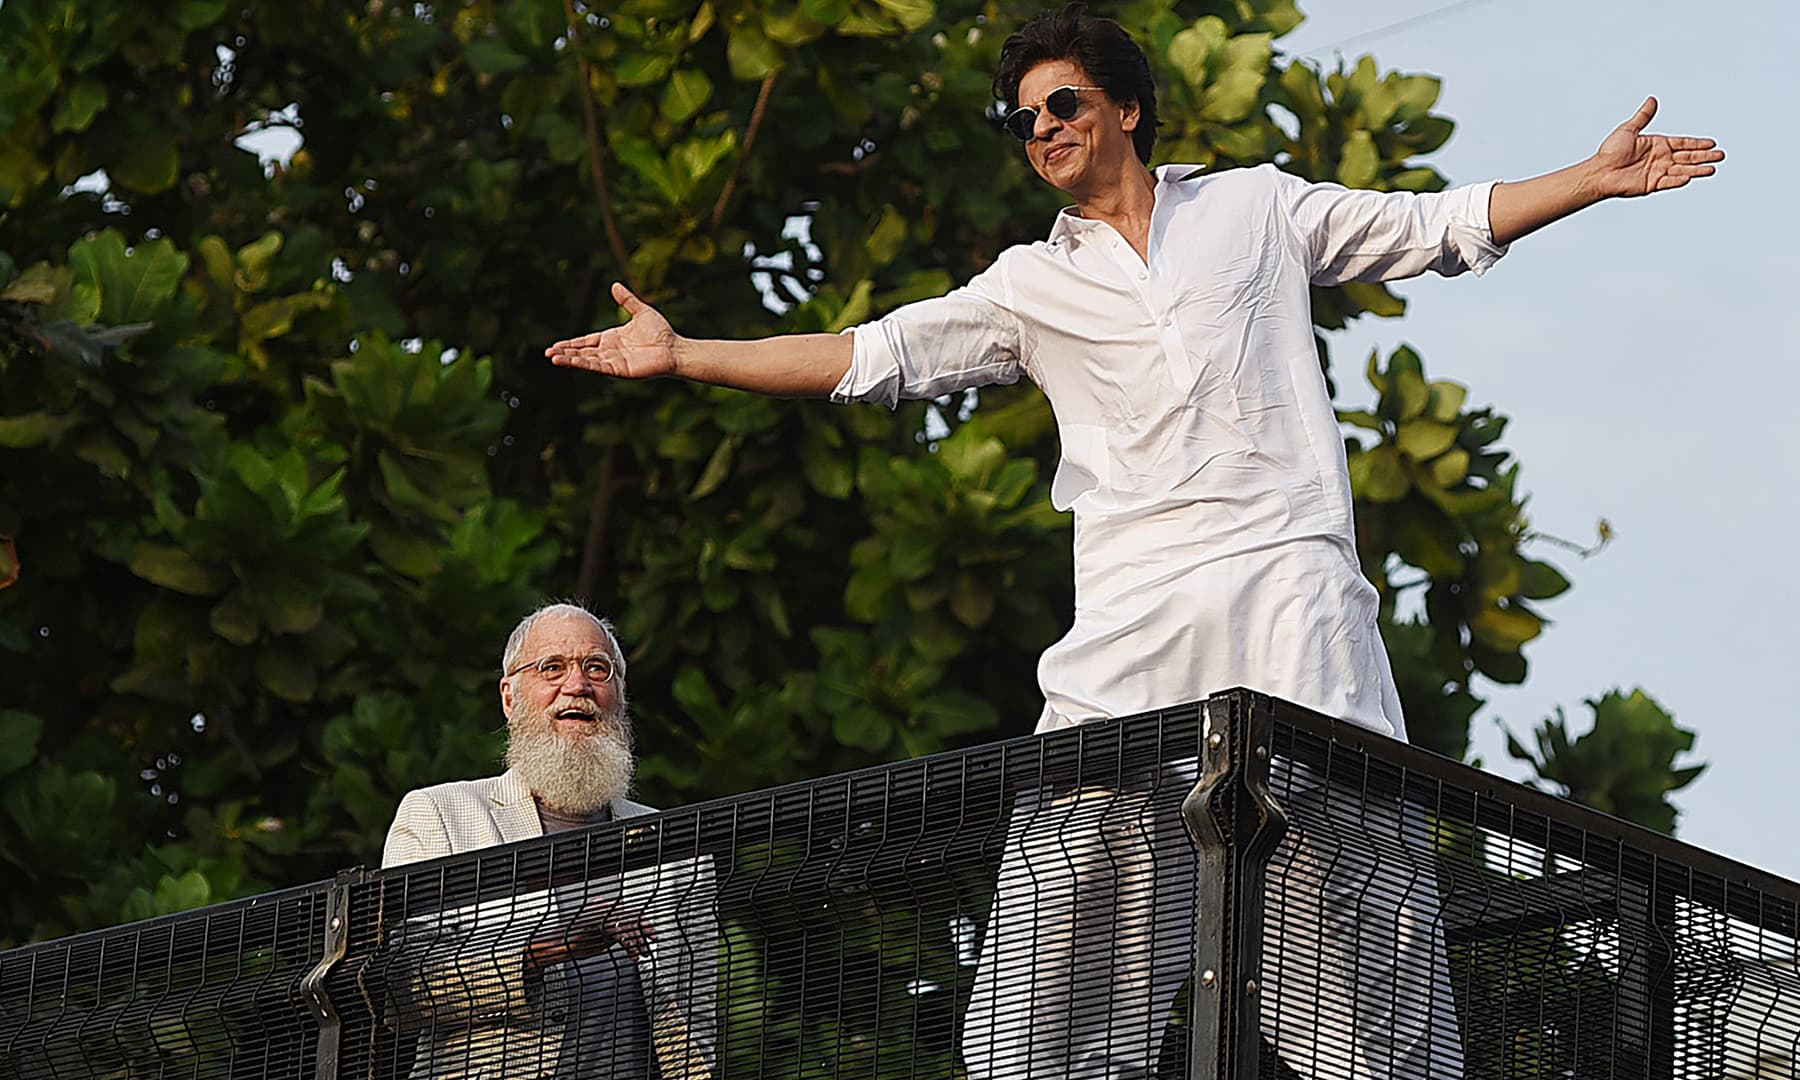 Bollywood actor Shah Rukh Khan greets his fans during Eidul Fitr celebrations as US television host David Letterman (L) watches in Mumbai on June 5 — AFP